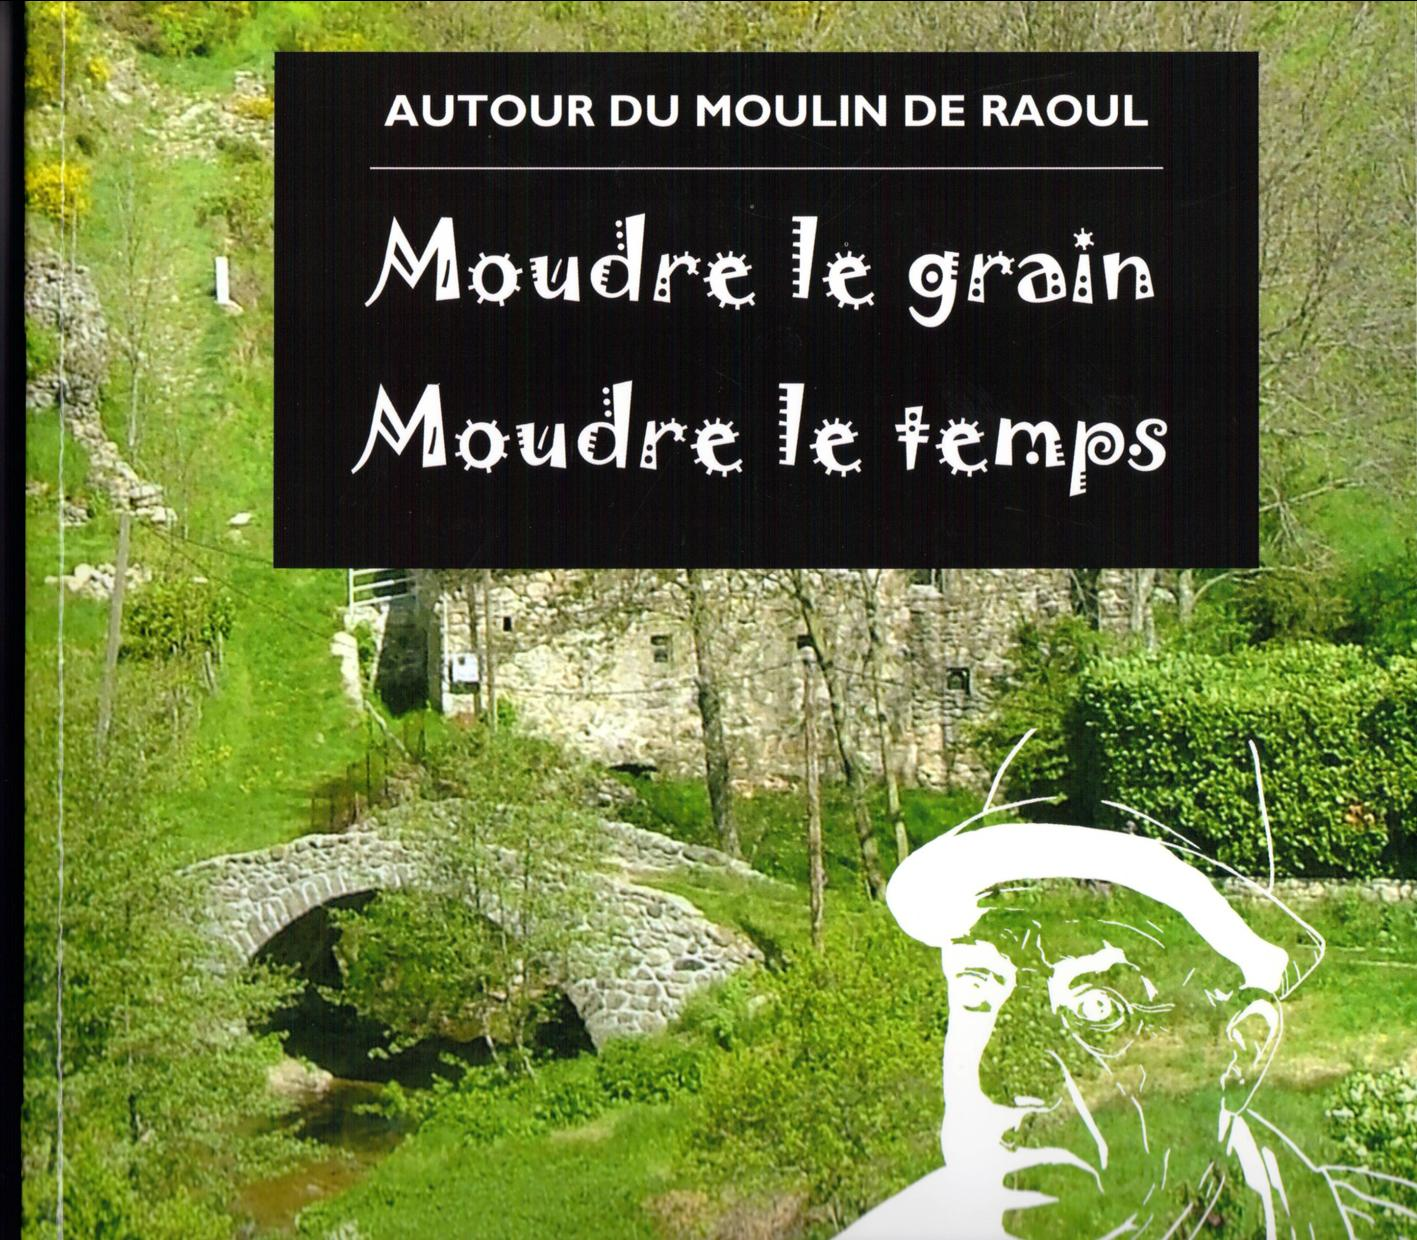 Moulin raoul